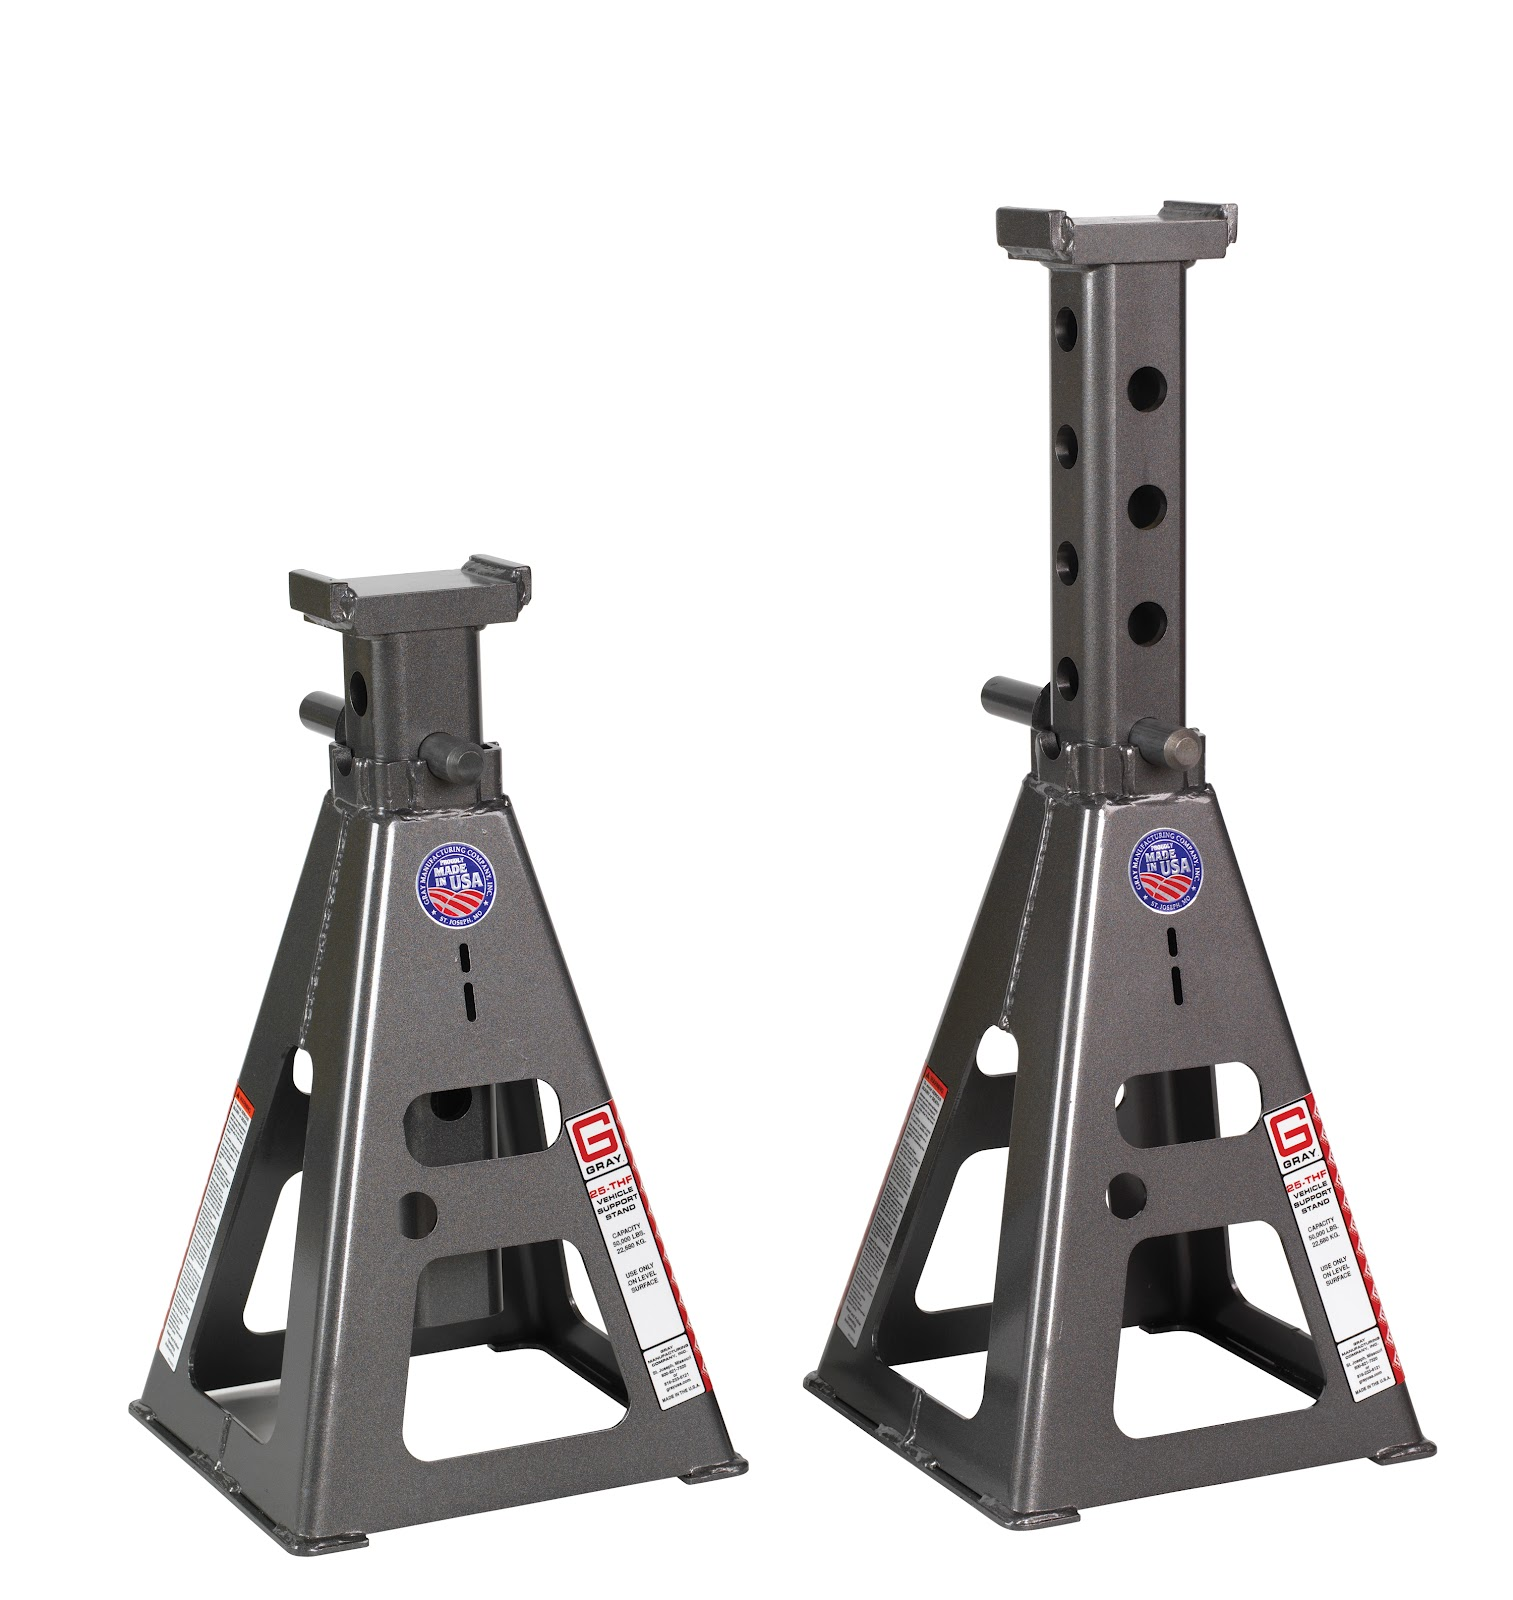 10 Ton Air Floor Jacks